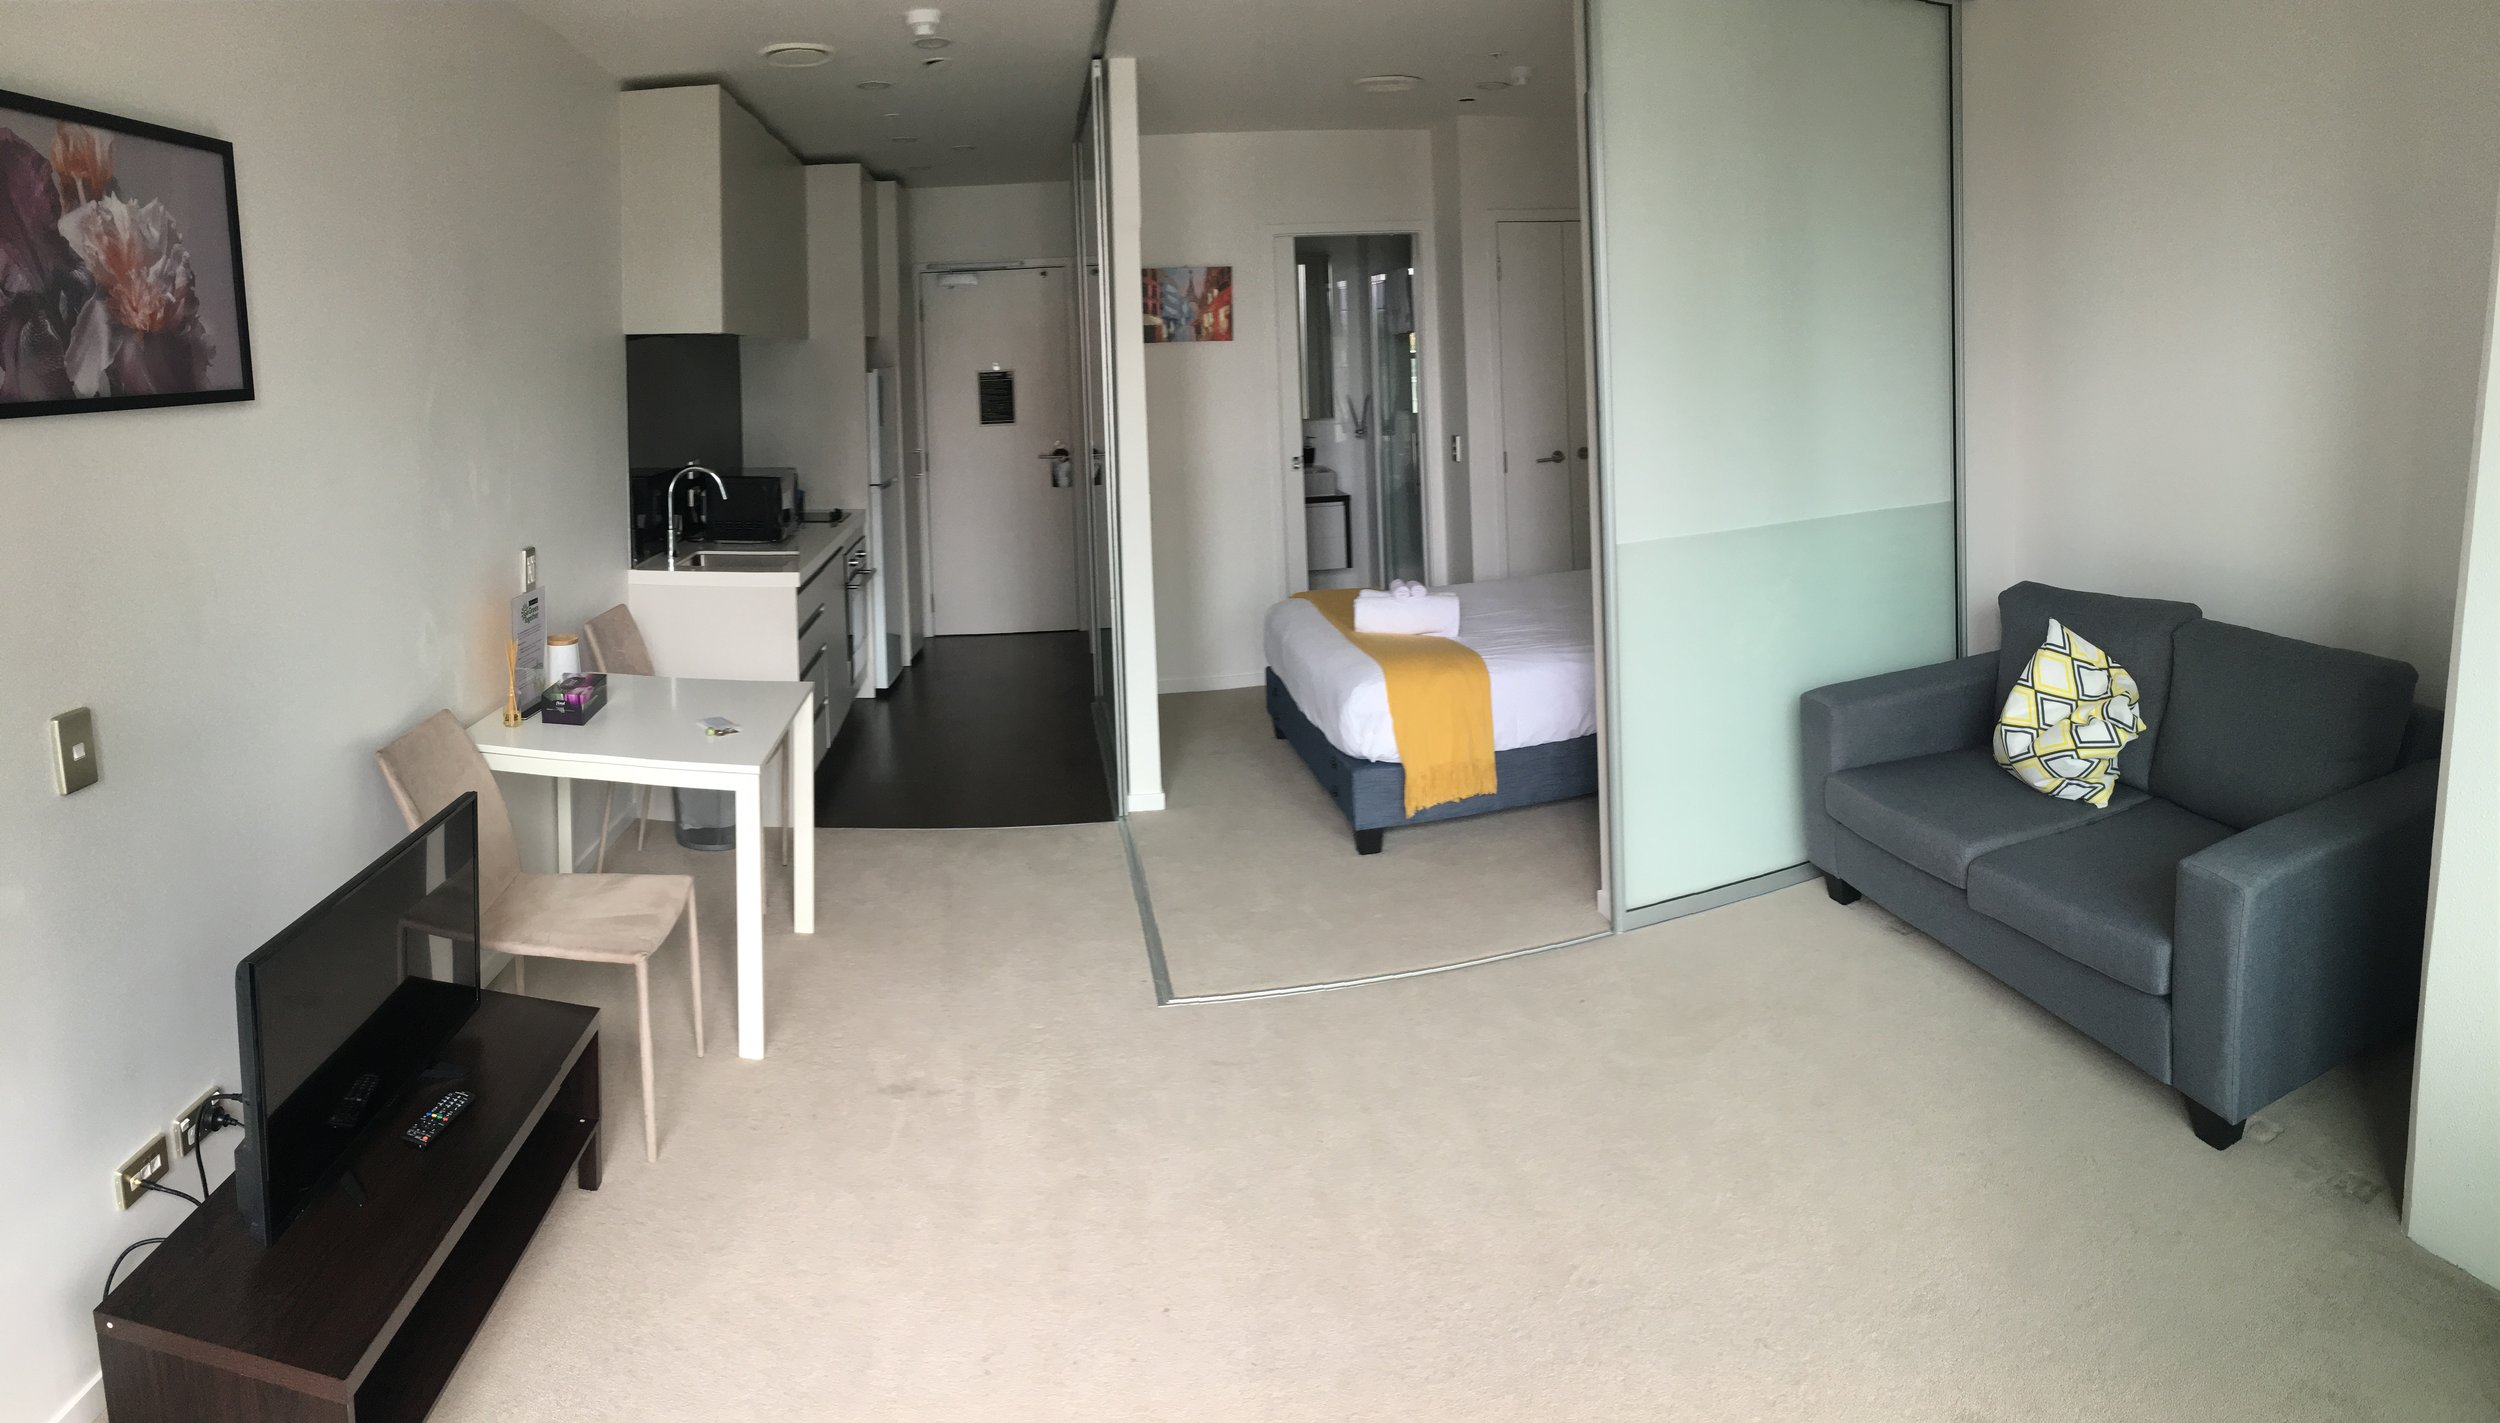 Star Victoria Serviced Apartments - very comfortable with lots of amenities, in particular a washer/dryer for this weary traveler.